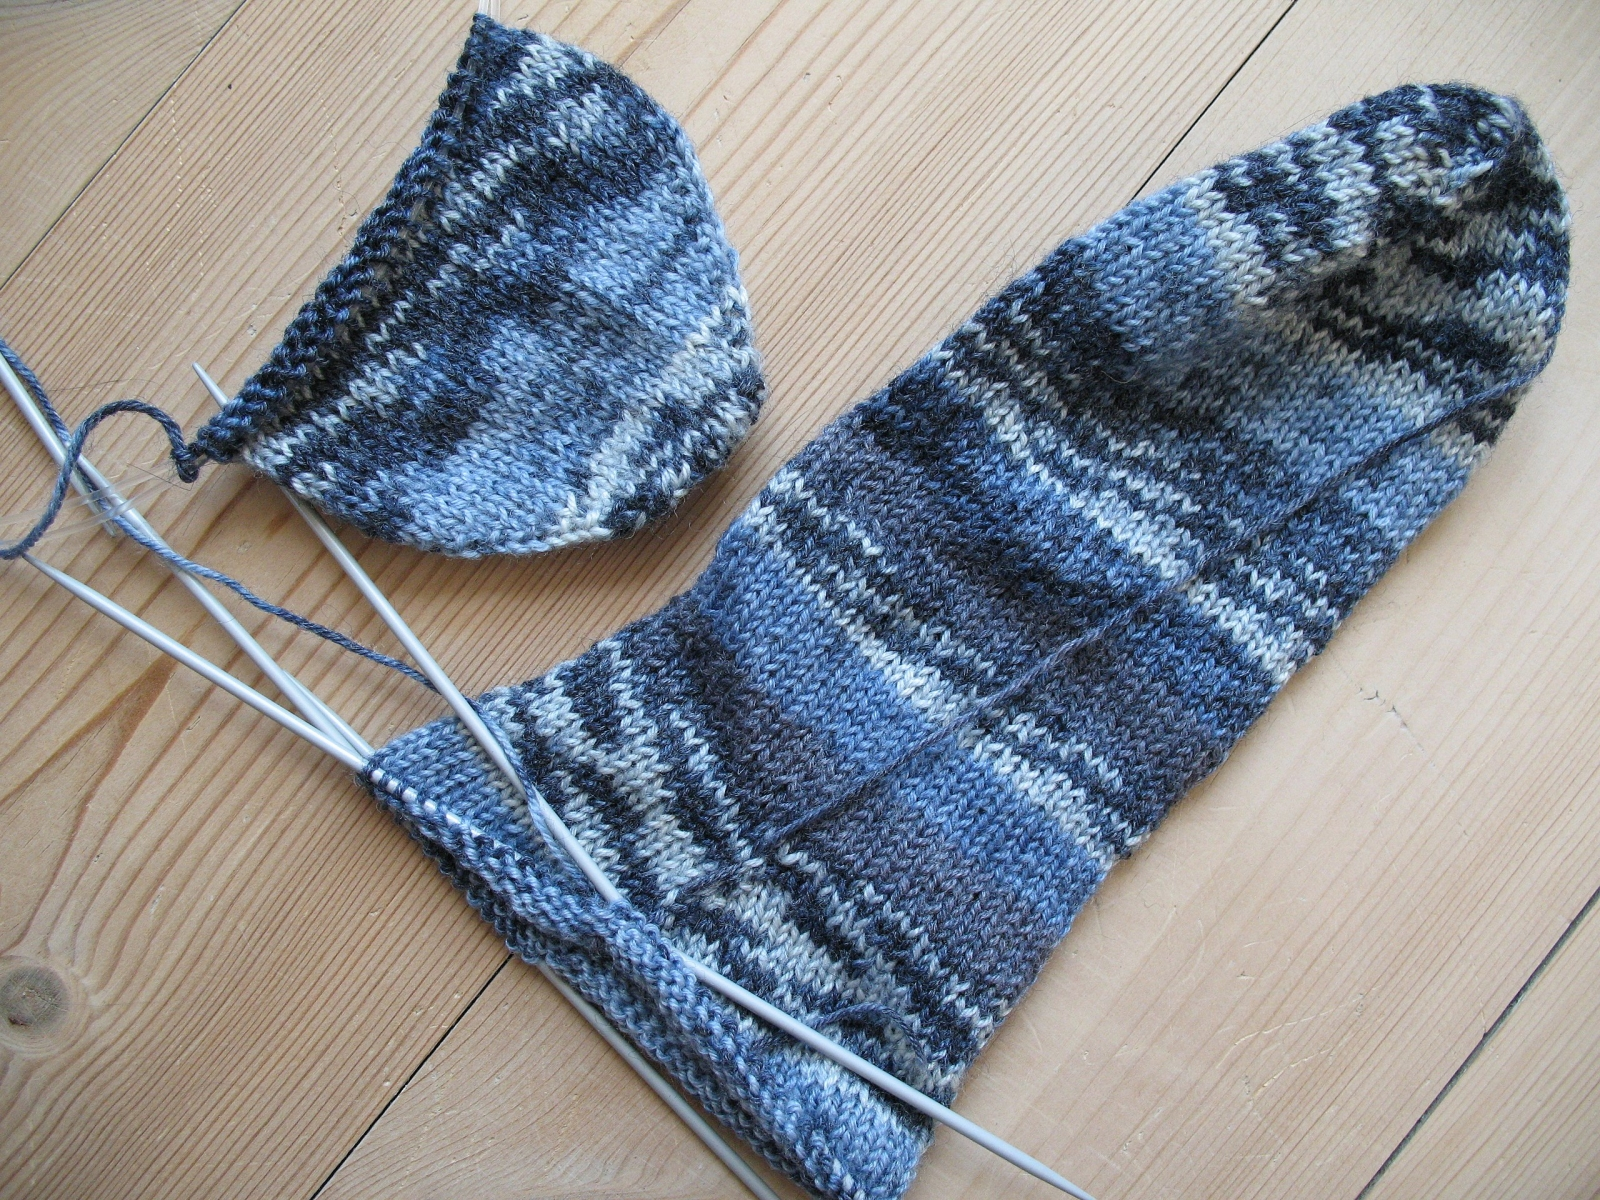 2560px-Blue_socks,_knitting_in_progress